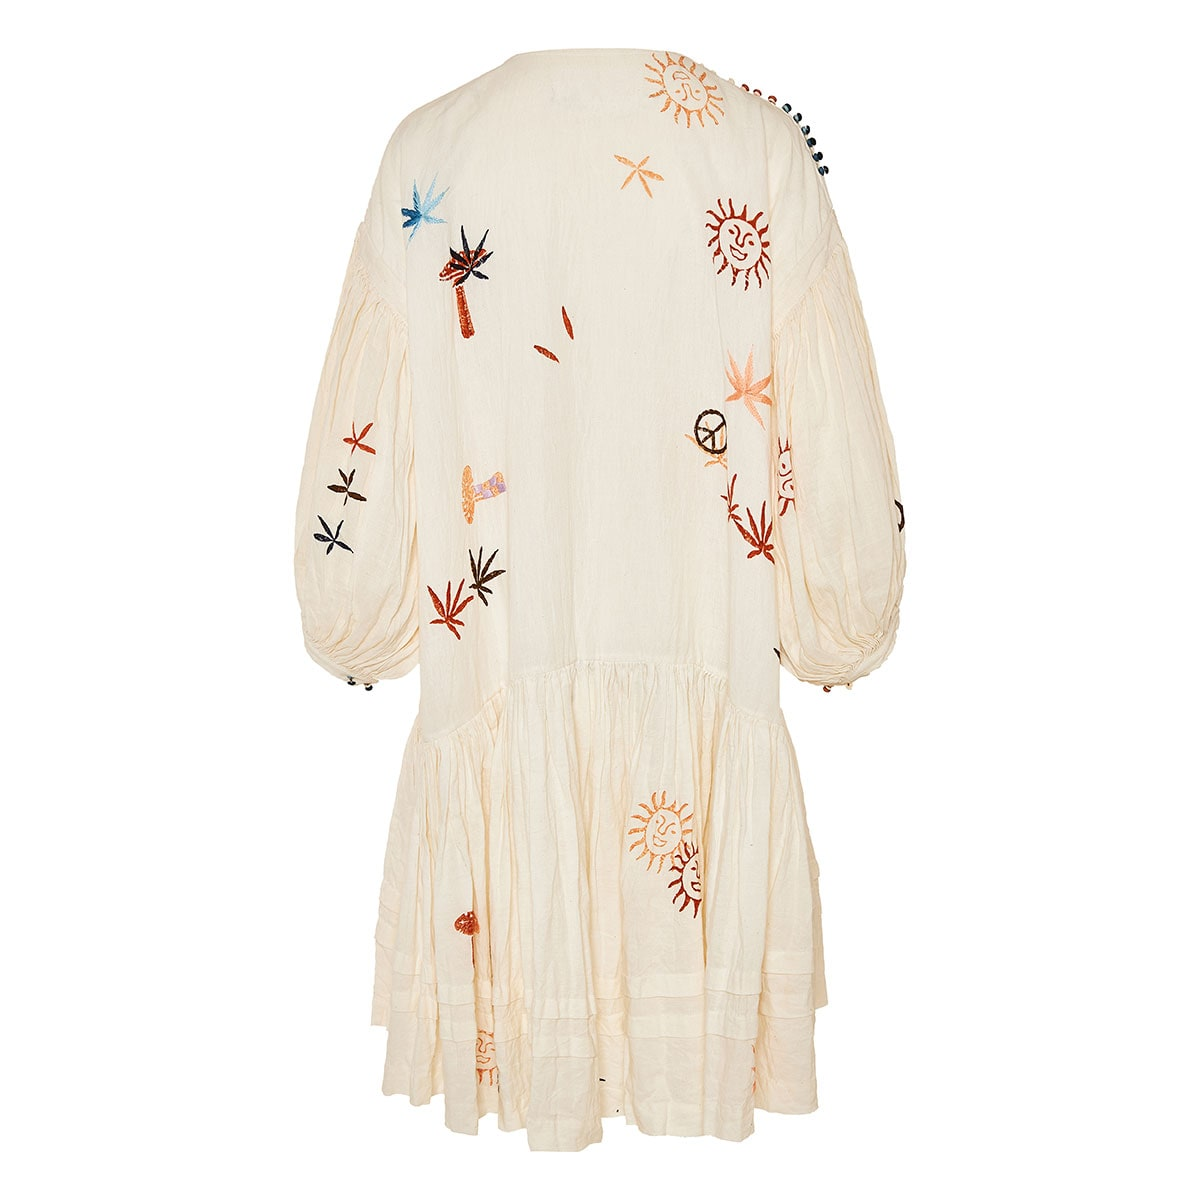 Verity embroidered cotton dress